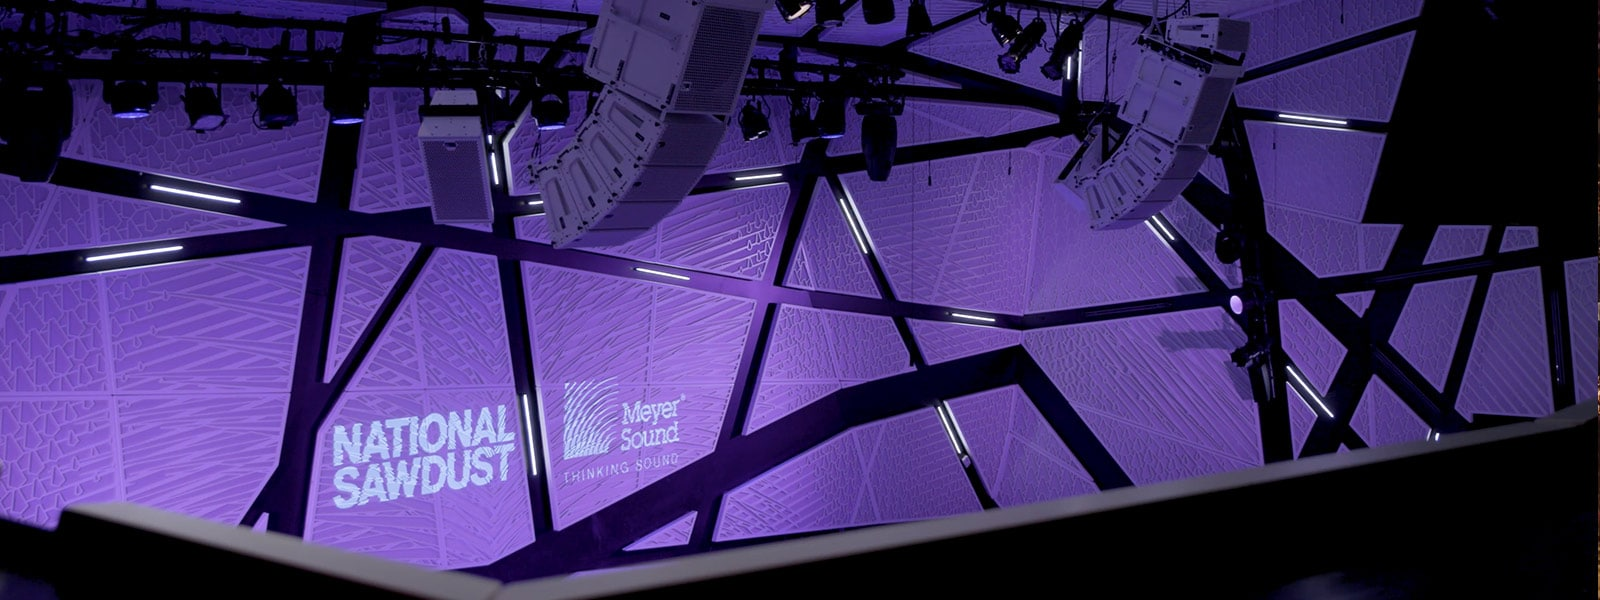 National Sawdust Opens New Realms for Musical Innovation